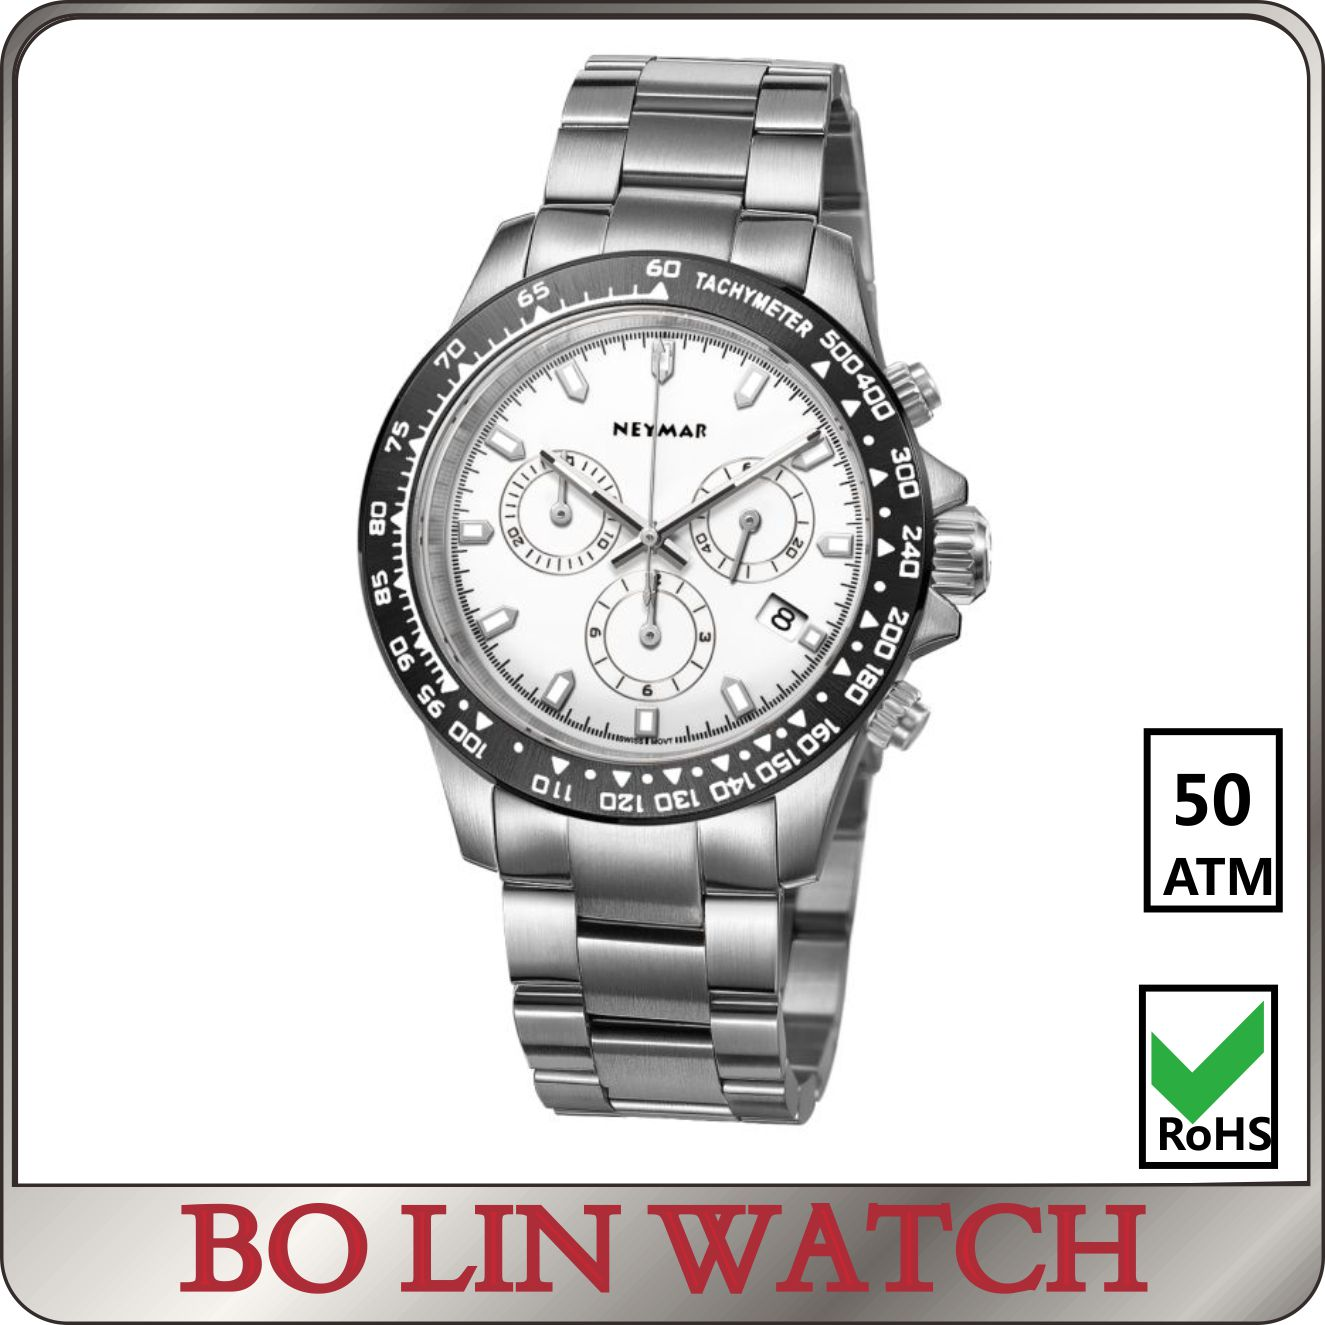 50ATM Top brand mens personalized king quartz watches chronograph 2018 watches men